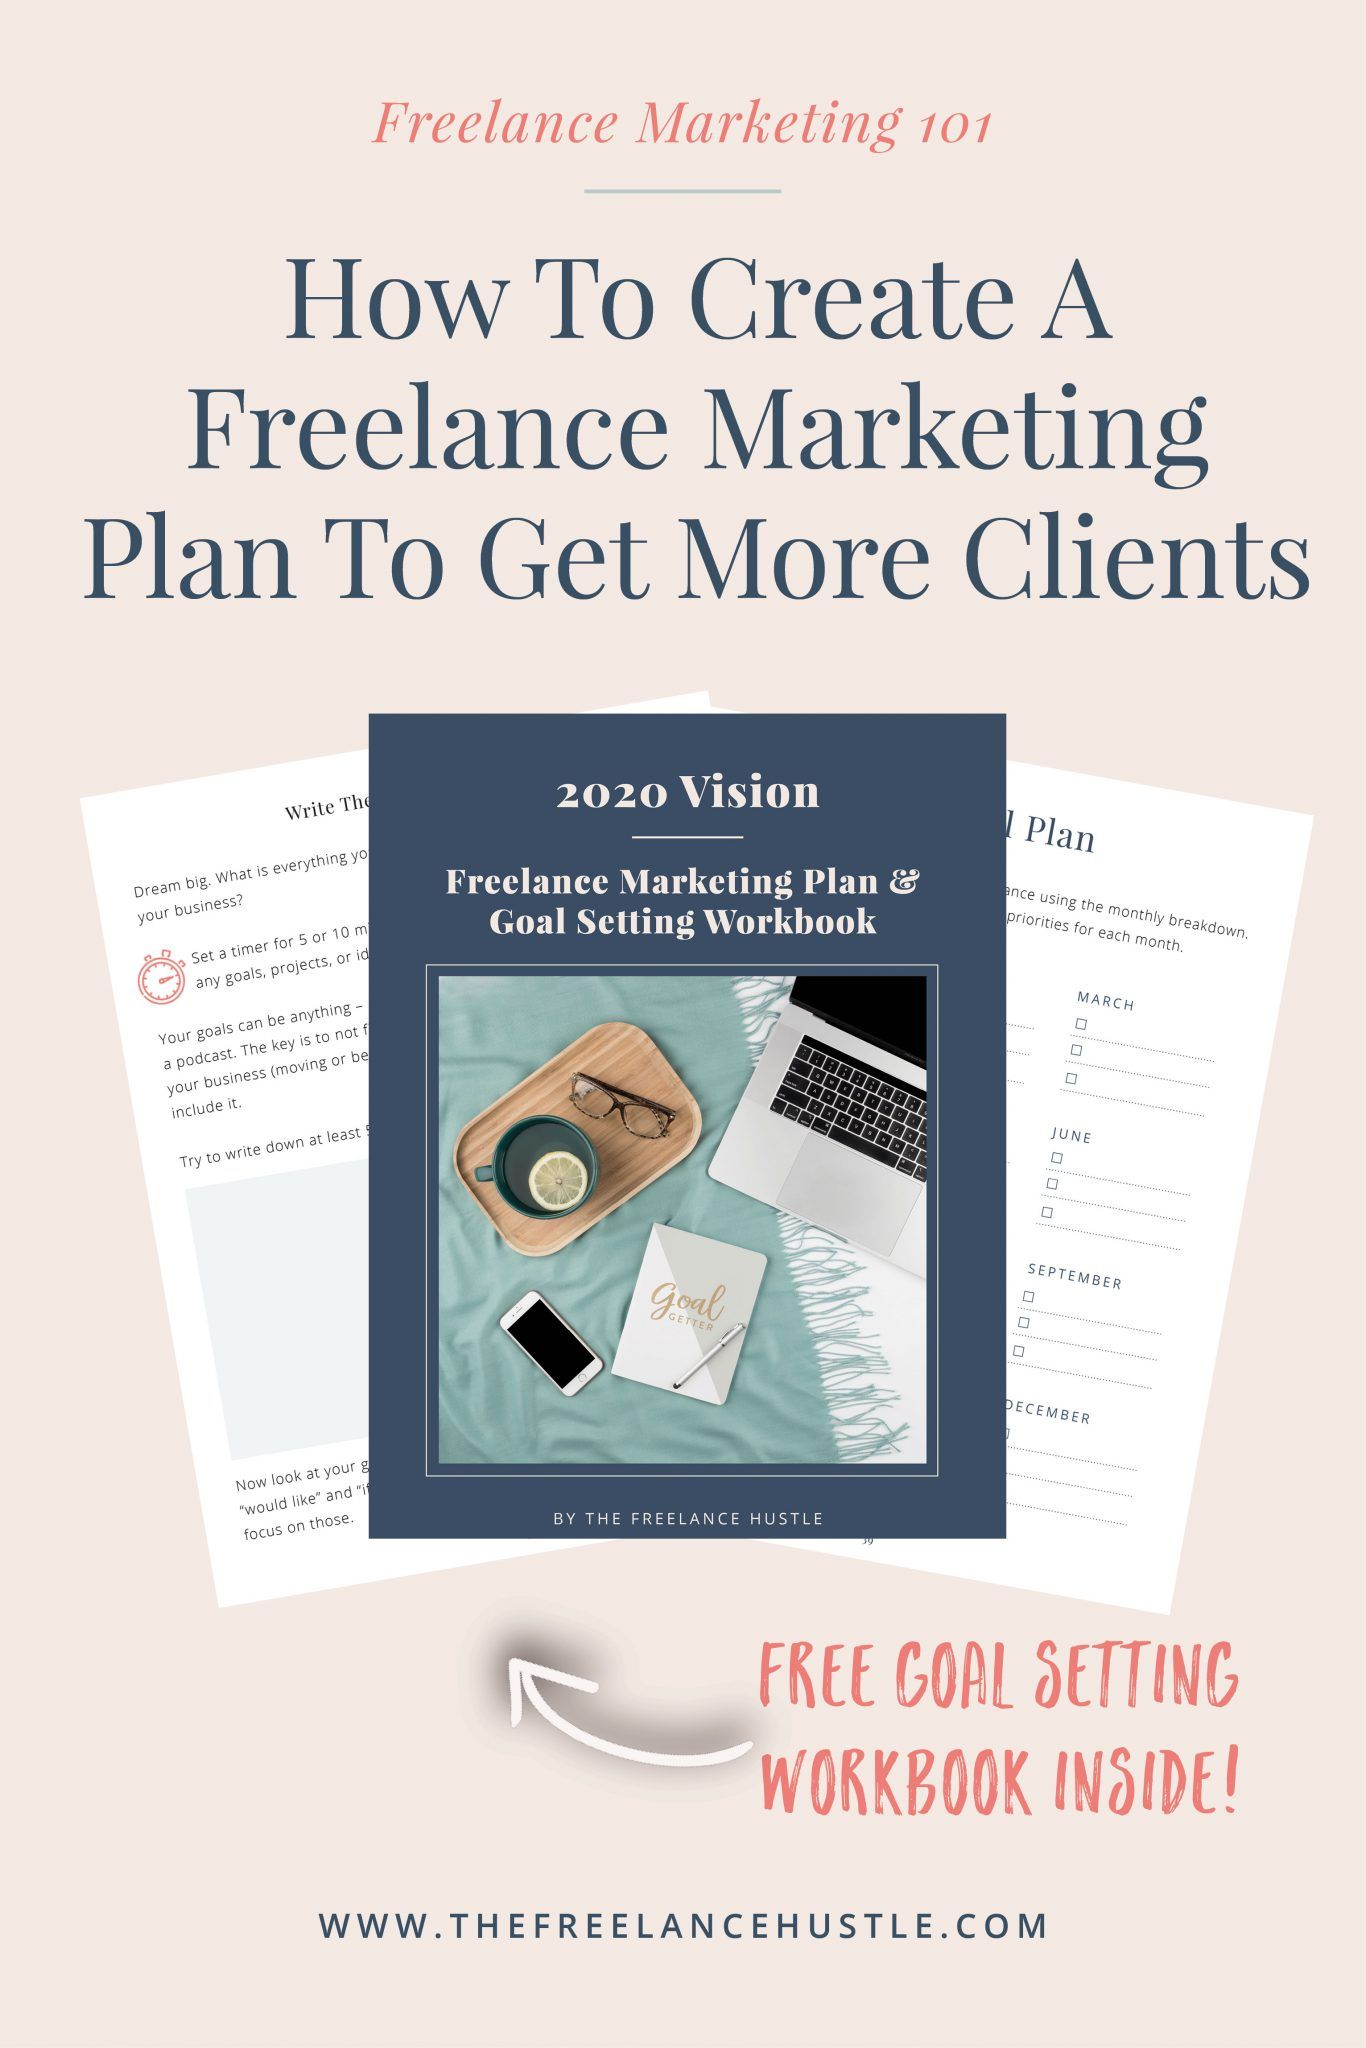 How To Create A Freelance Marketing Plan To Get More